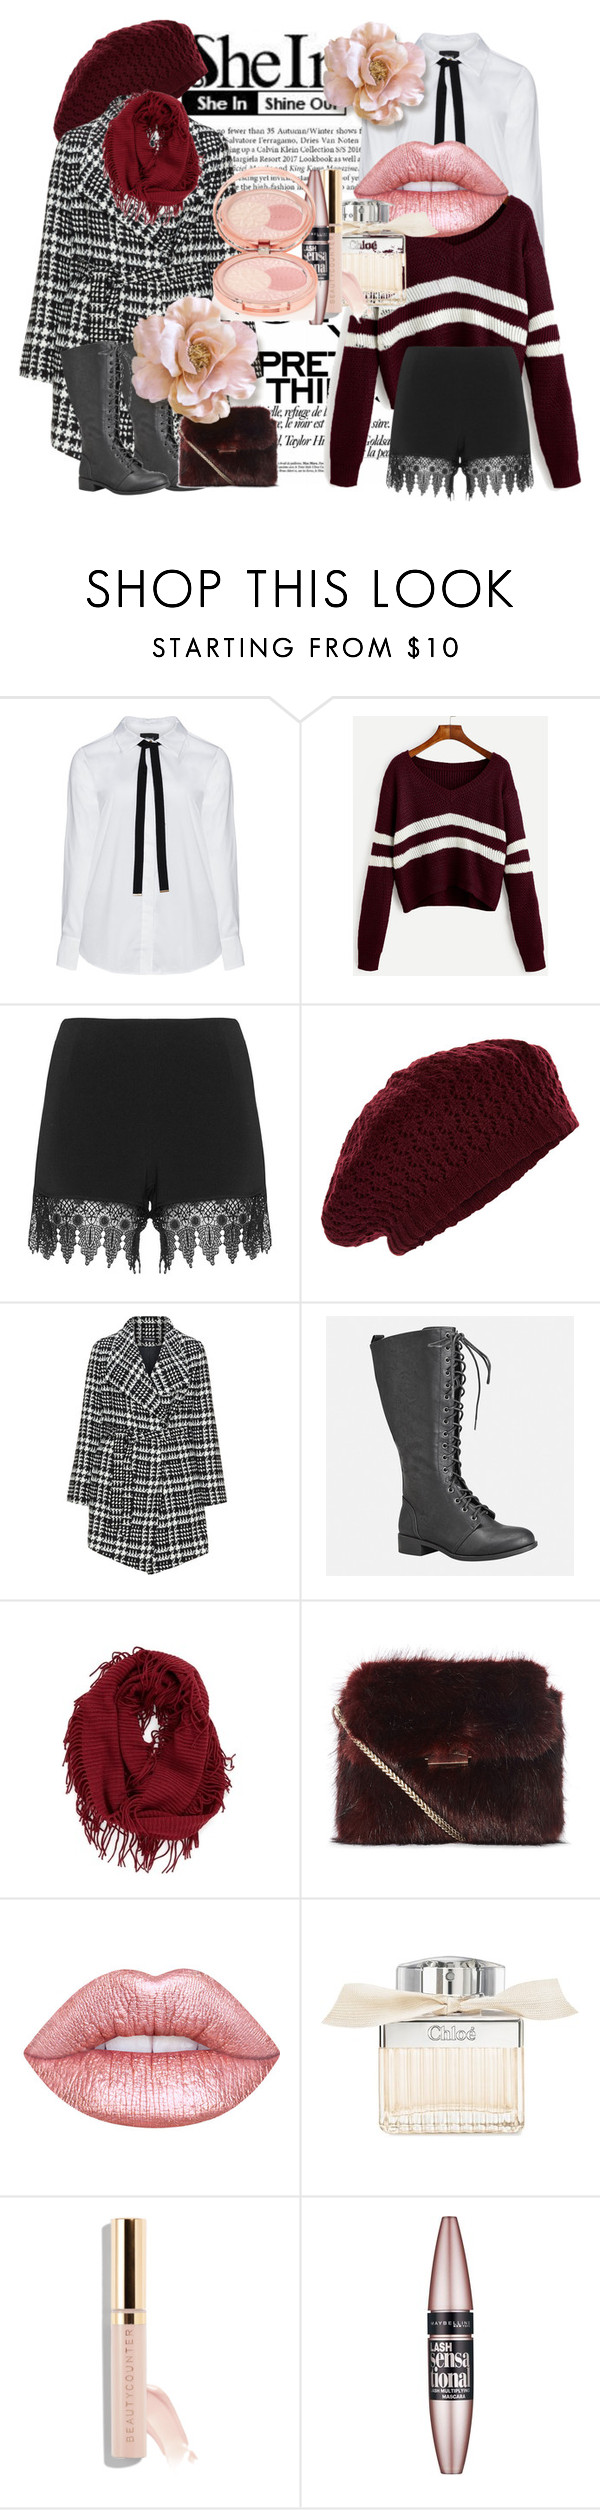 """Vínové pruhované V Neck Crop Sweater"" by patkova-v ❤ liked on Polyvore featuring Zizzi, JunaRose, Accessorize, Samoon, Avenue, BP., Chloé, Beautycounter, Maybelline and By Terry"